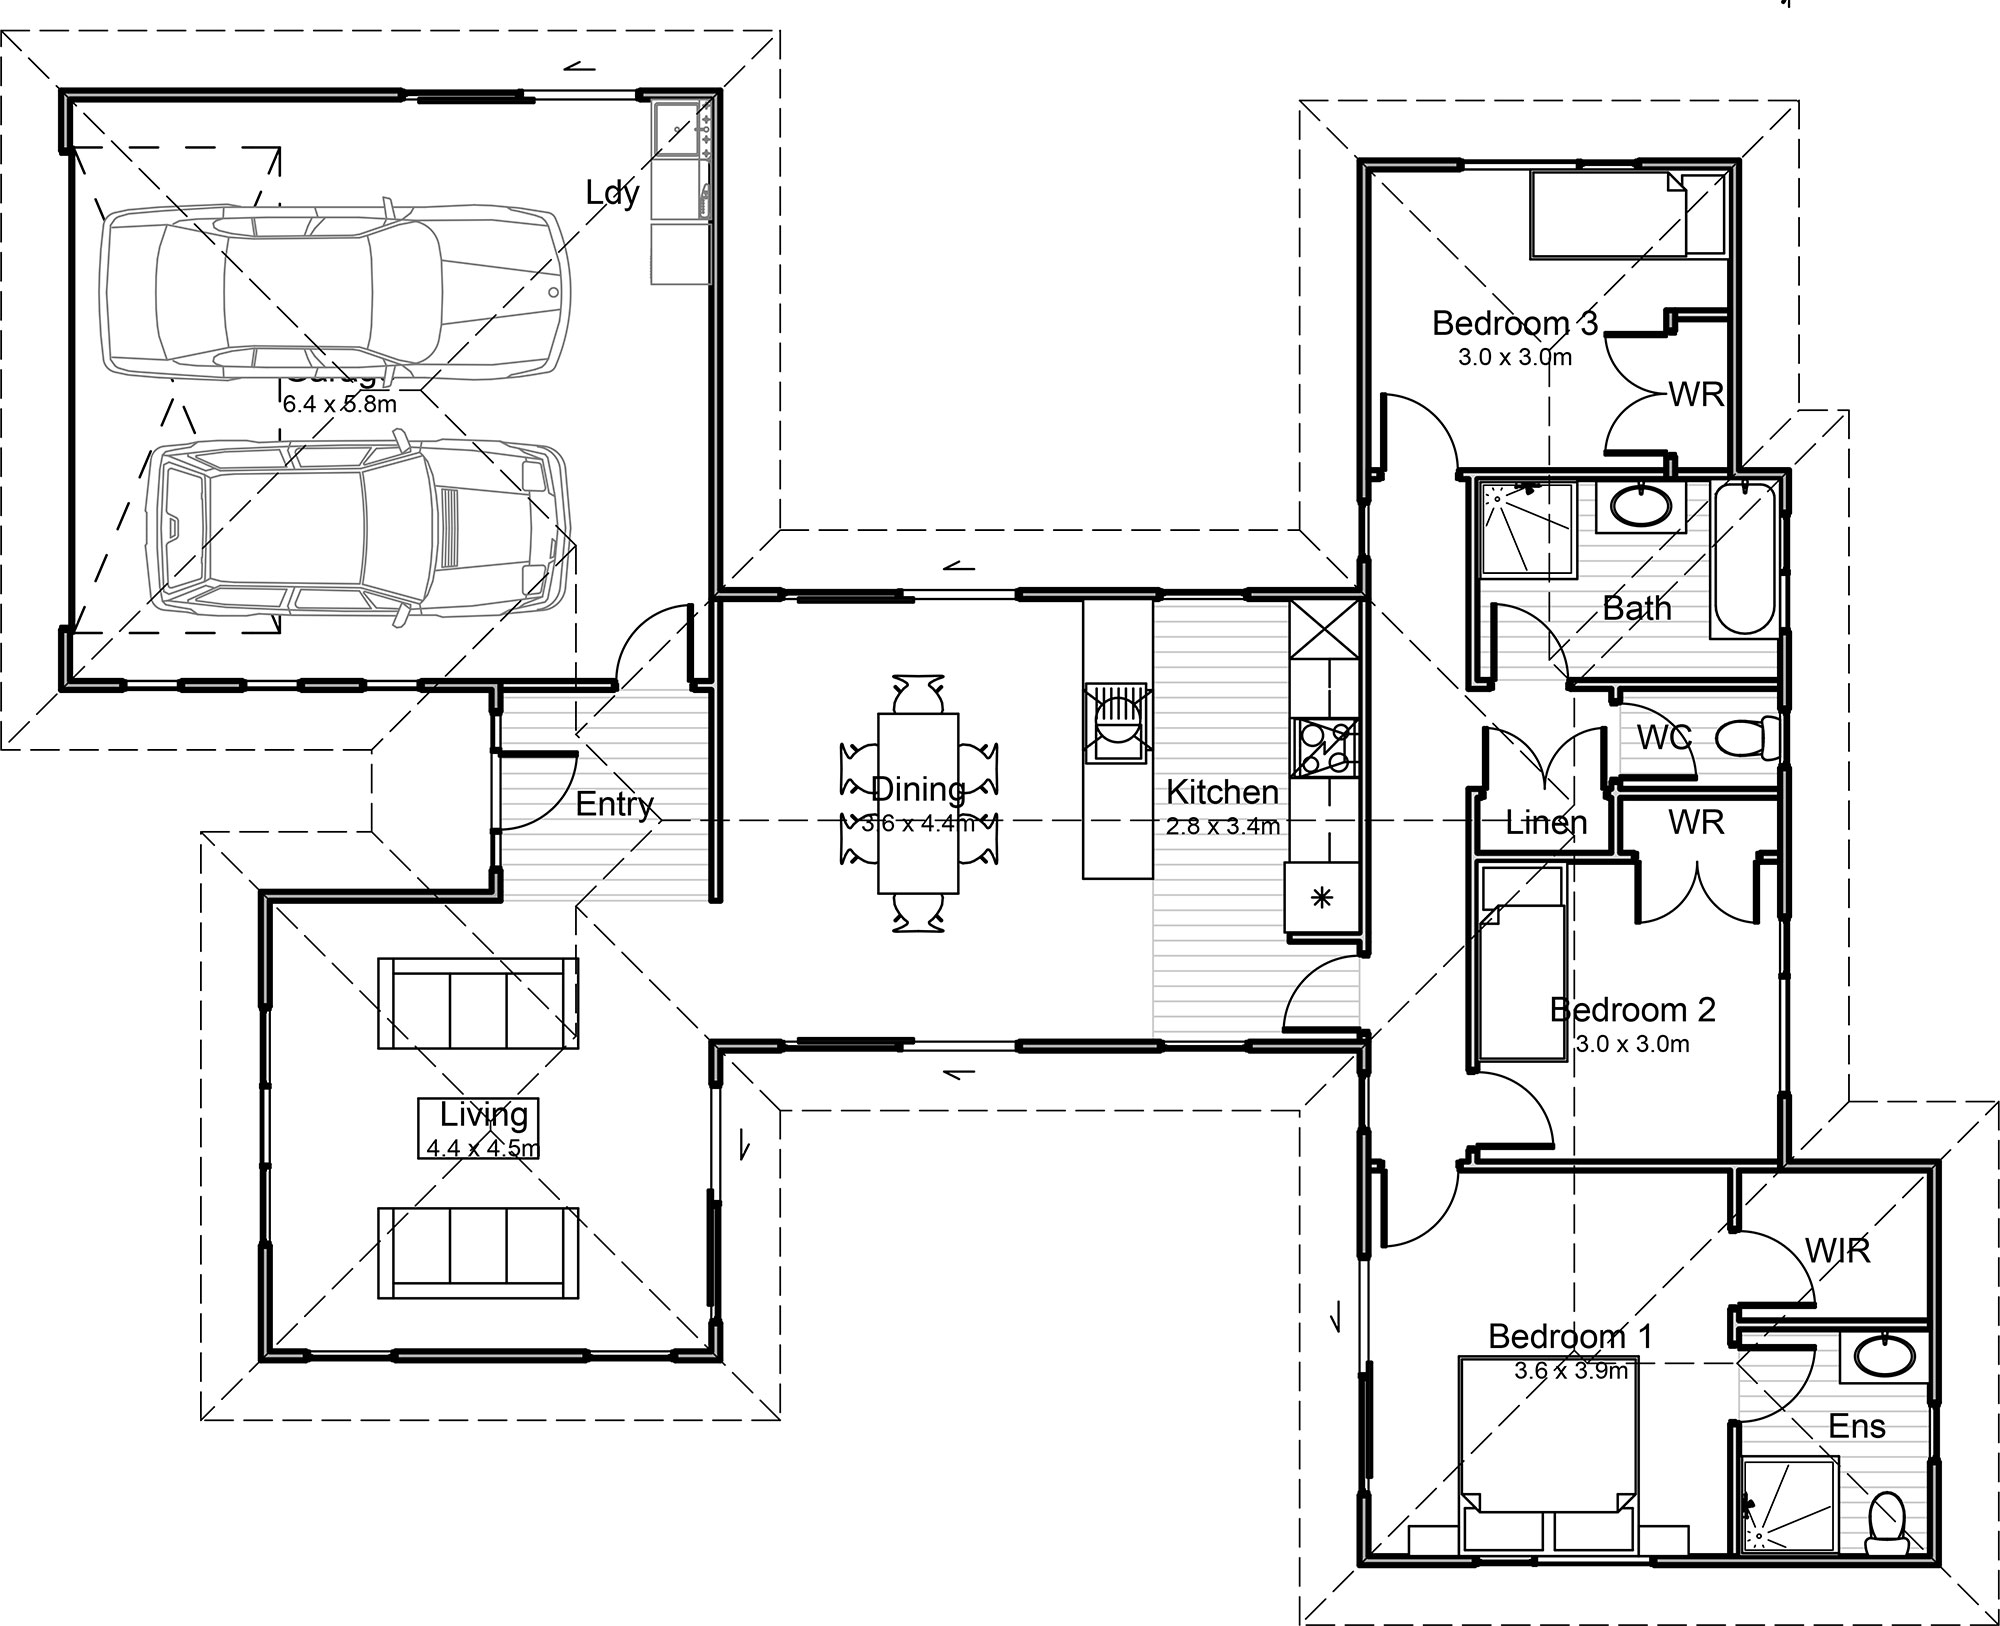 160m2 ultimate homes nz for Floor plans for 160 000